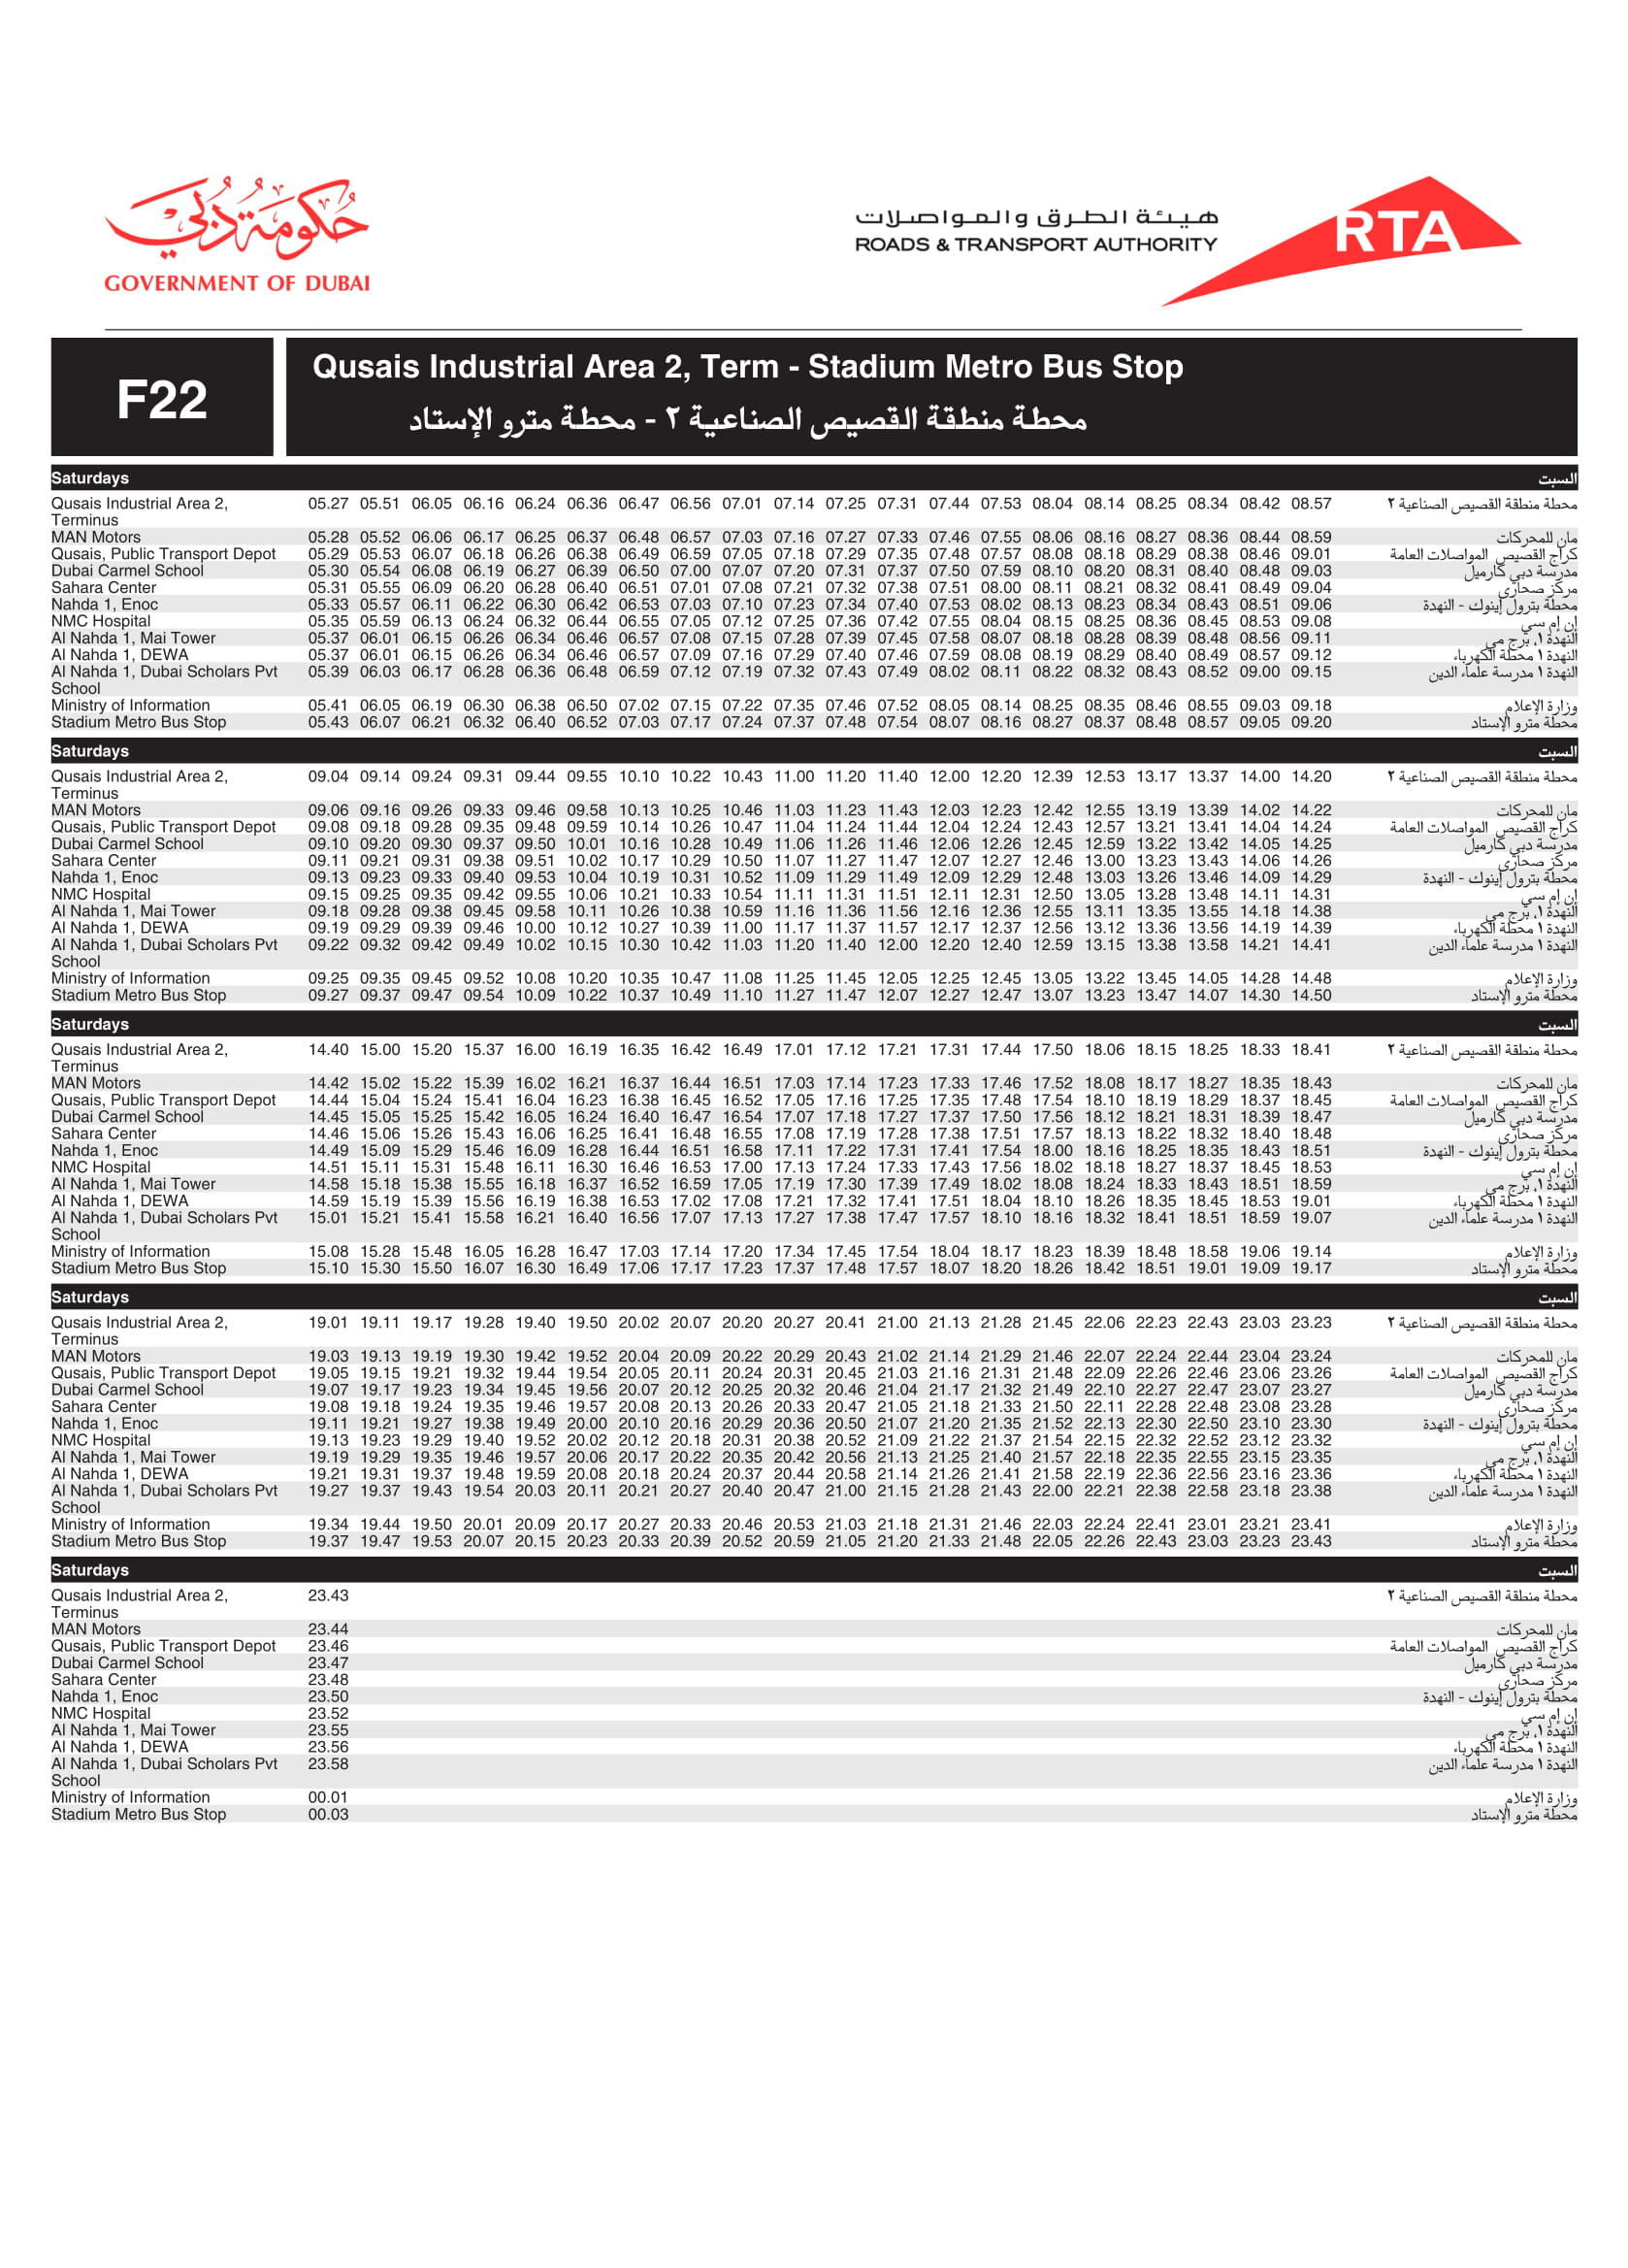 F22 Bus Route In Dubai Time Schedule Stops And Maps